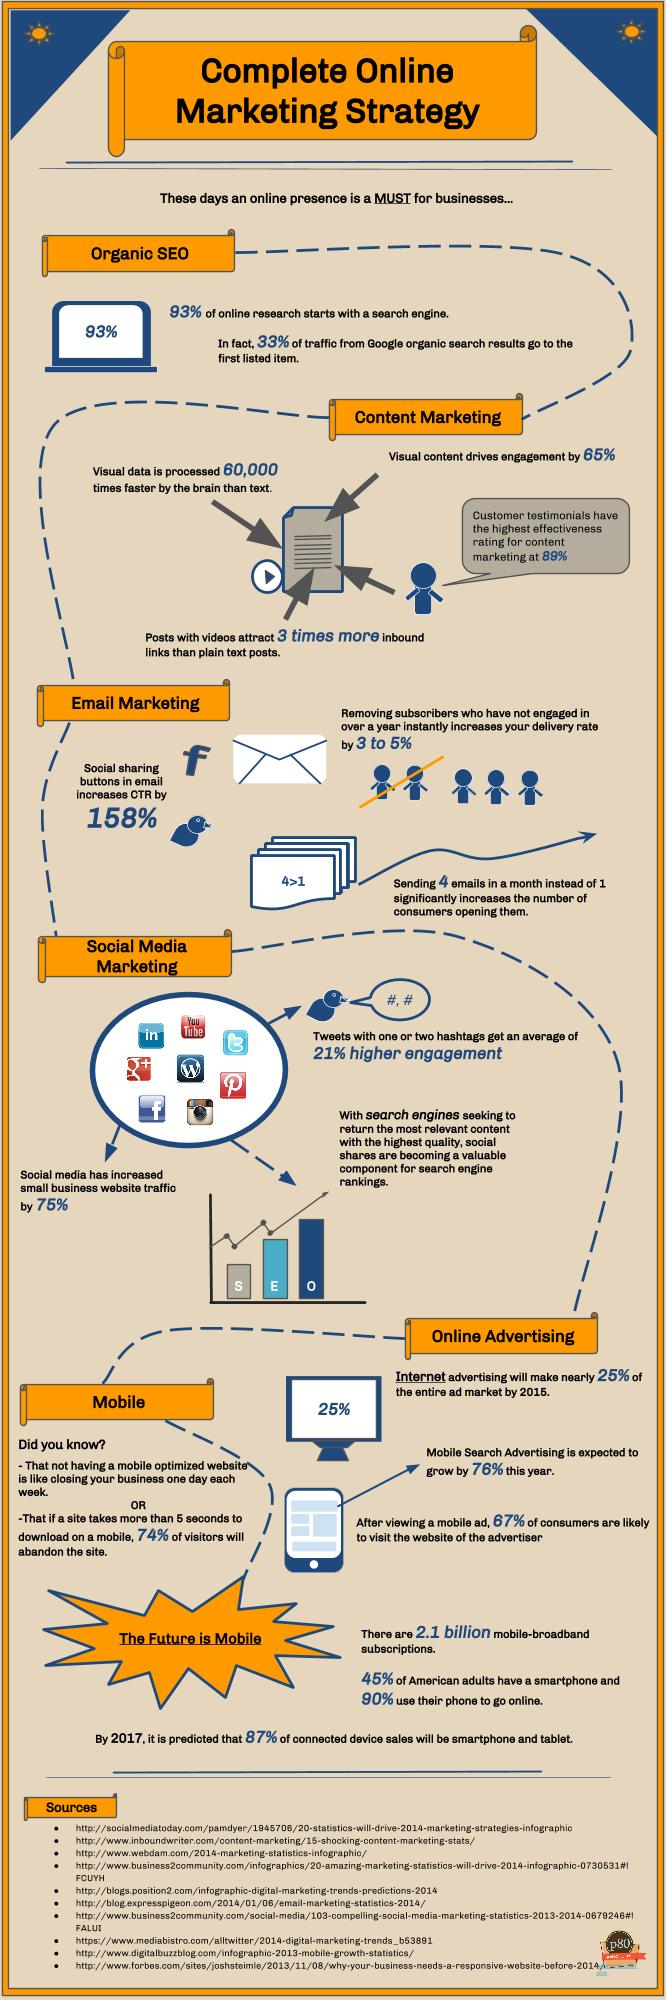 Complete Online Marketing Strategy Infographic